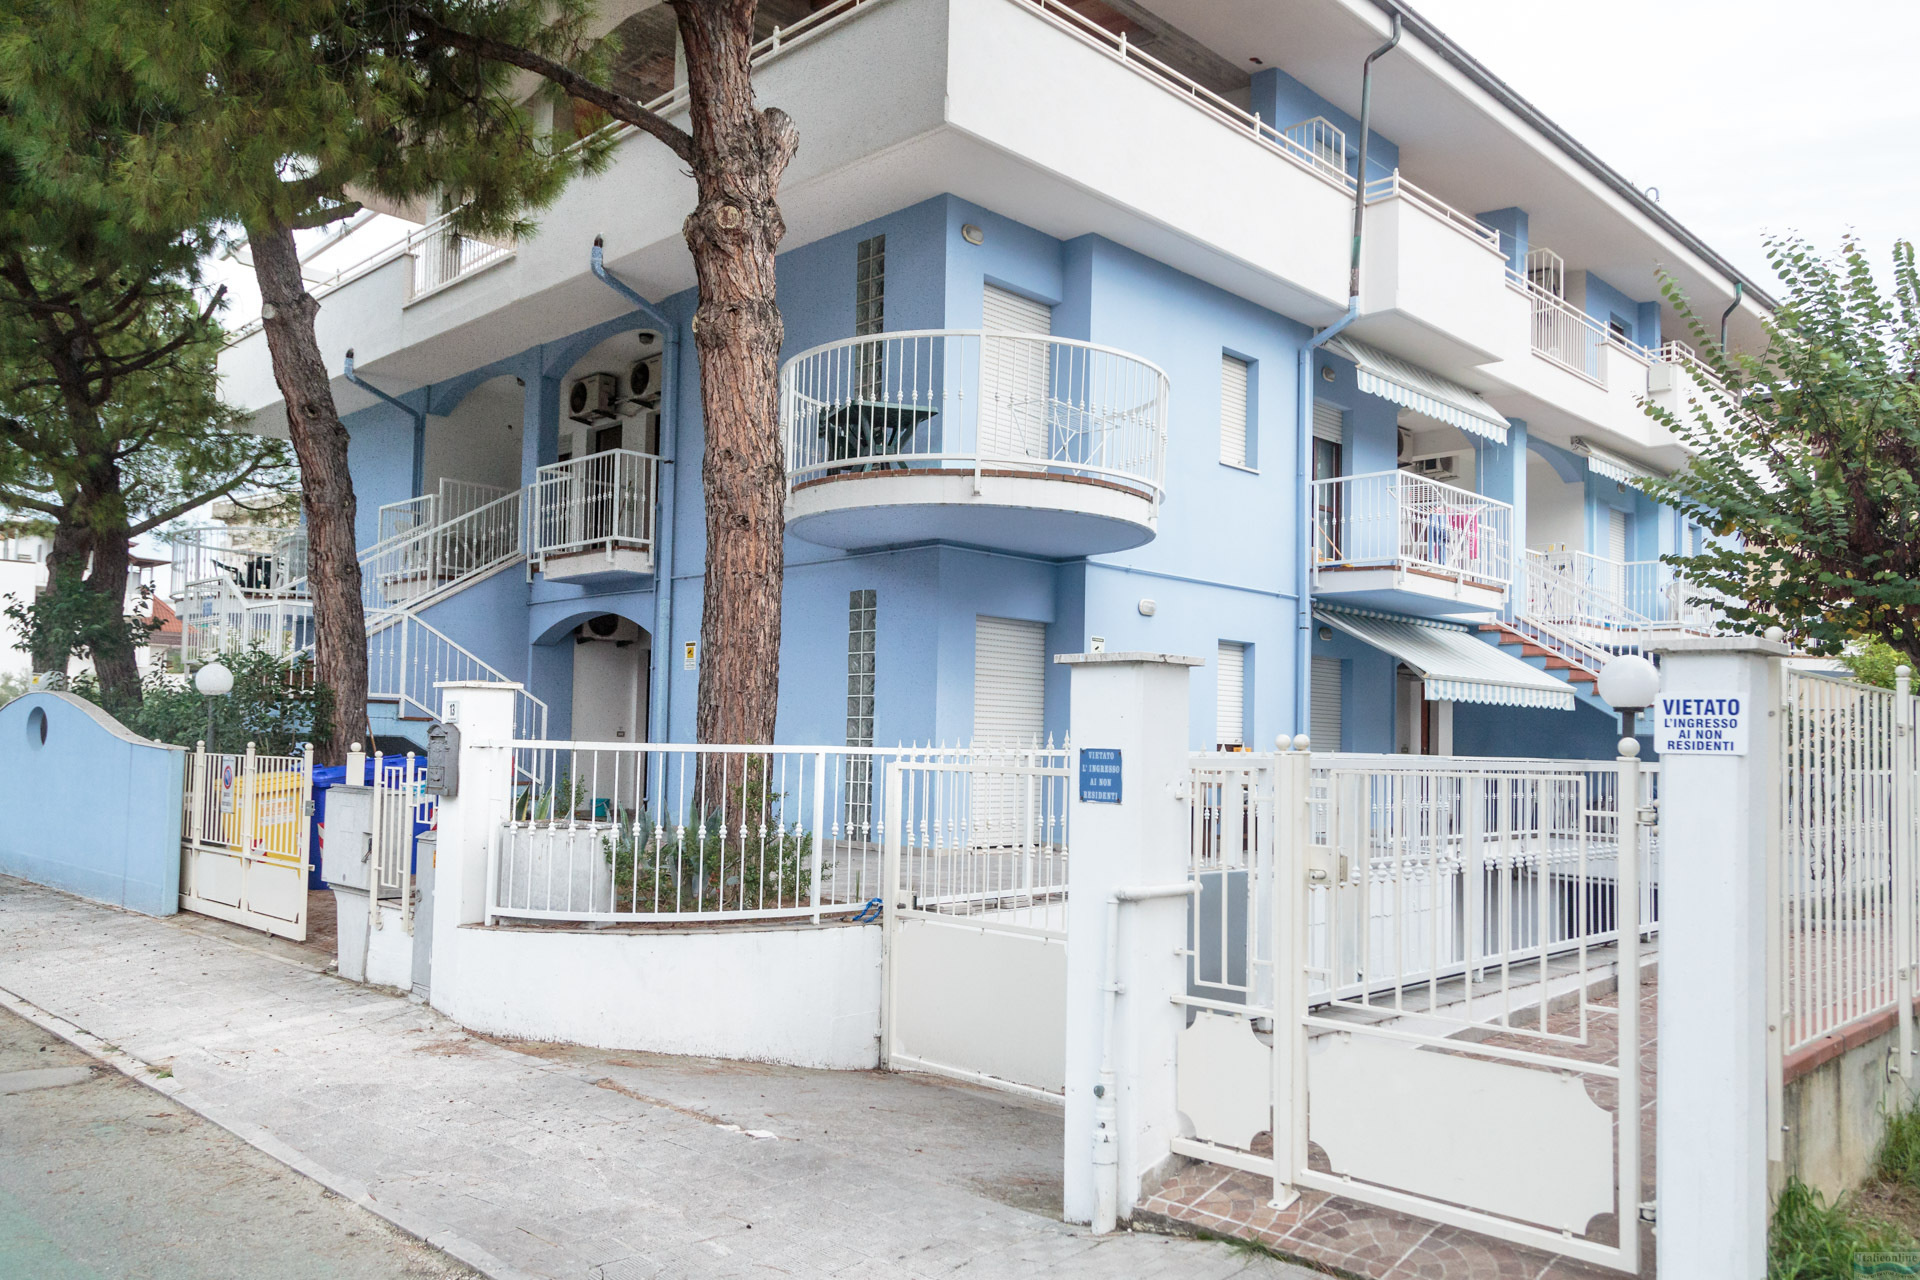 Residence Oceano San Benedetto del Tronto